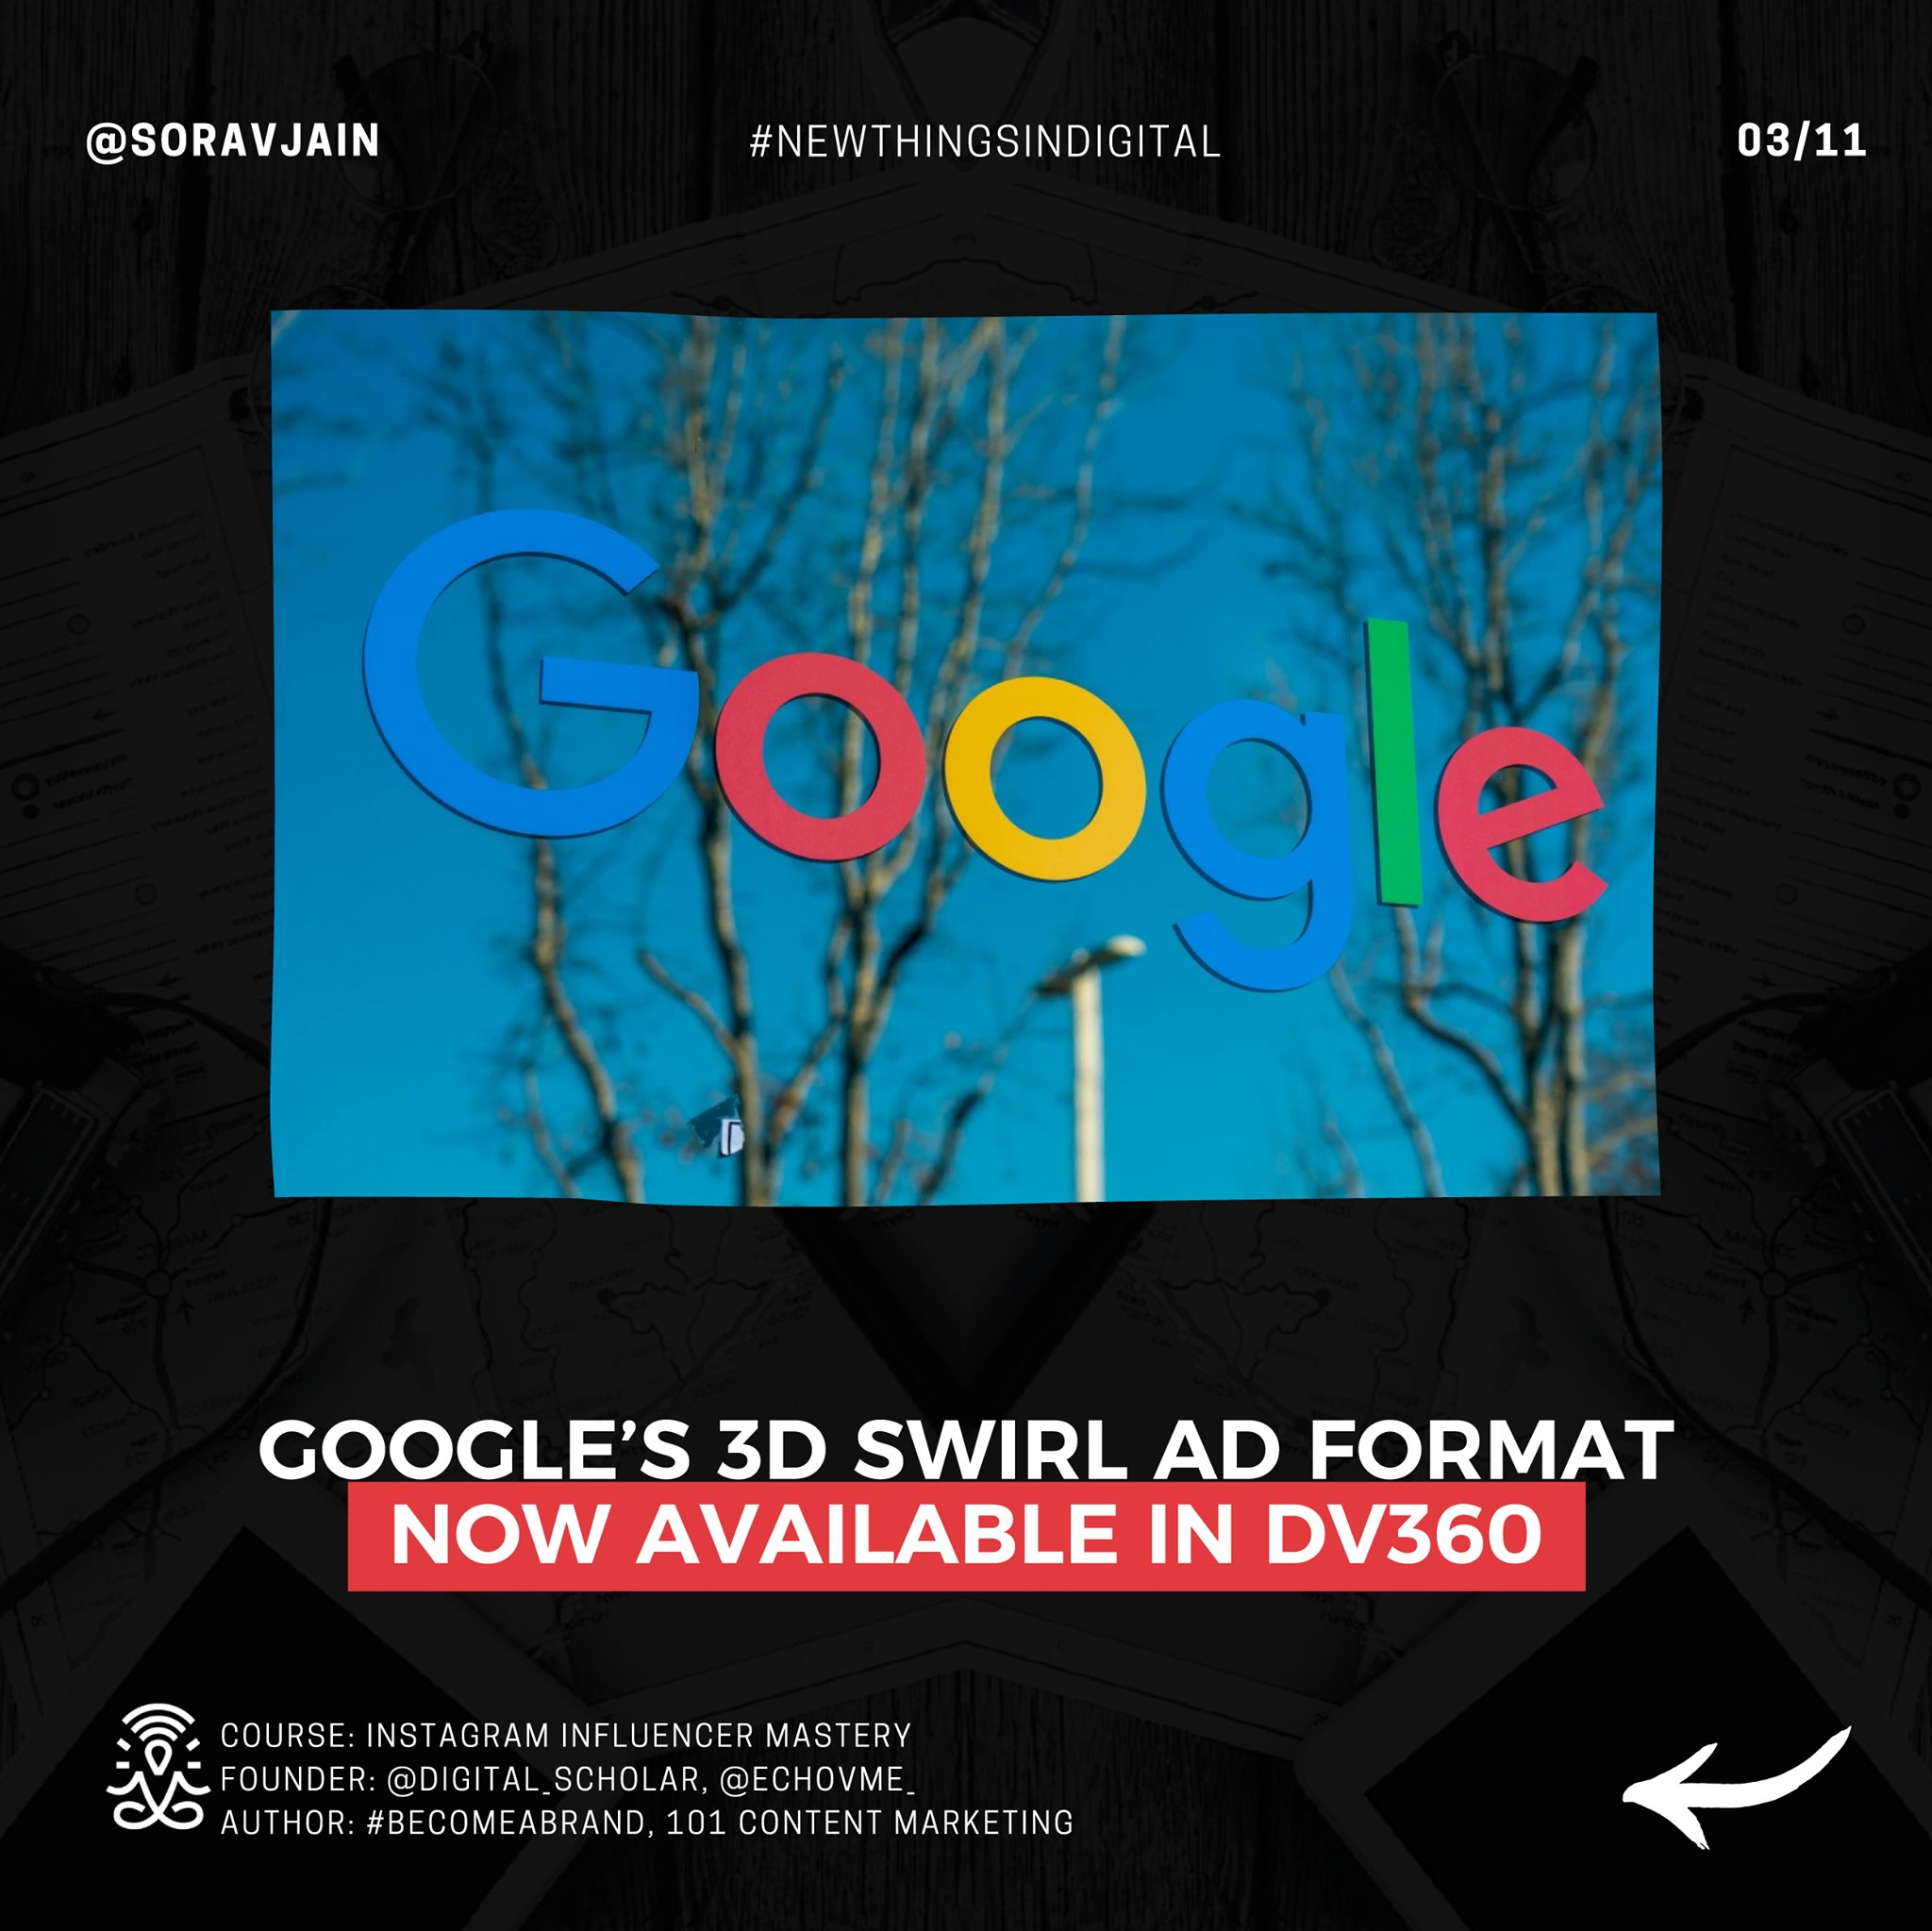 Google's 3D Swirl ad format now available in DV360